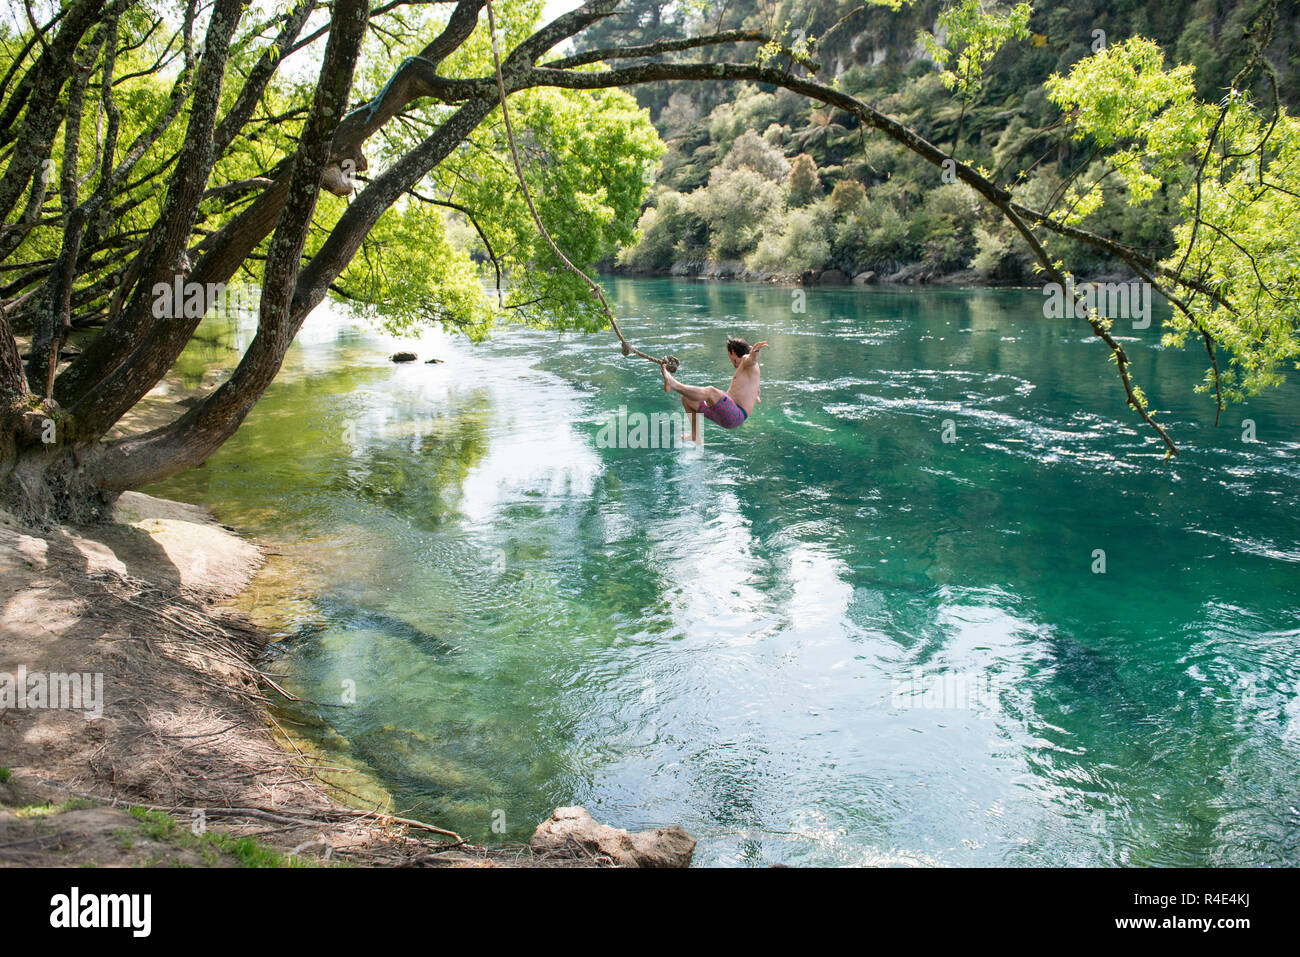 Jumping to the river, freedom - Stock Image